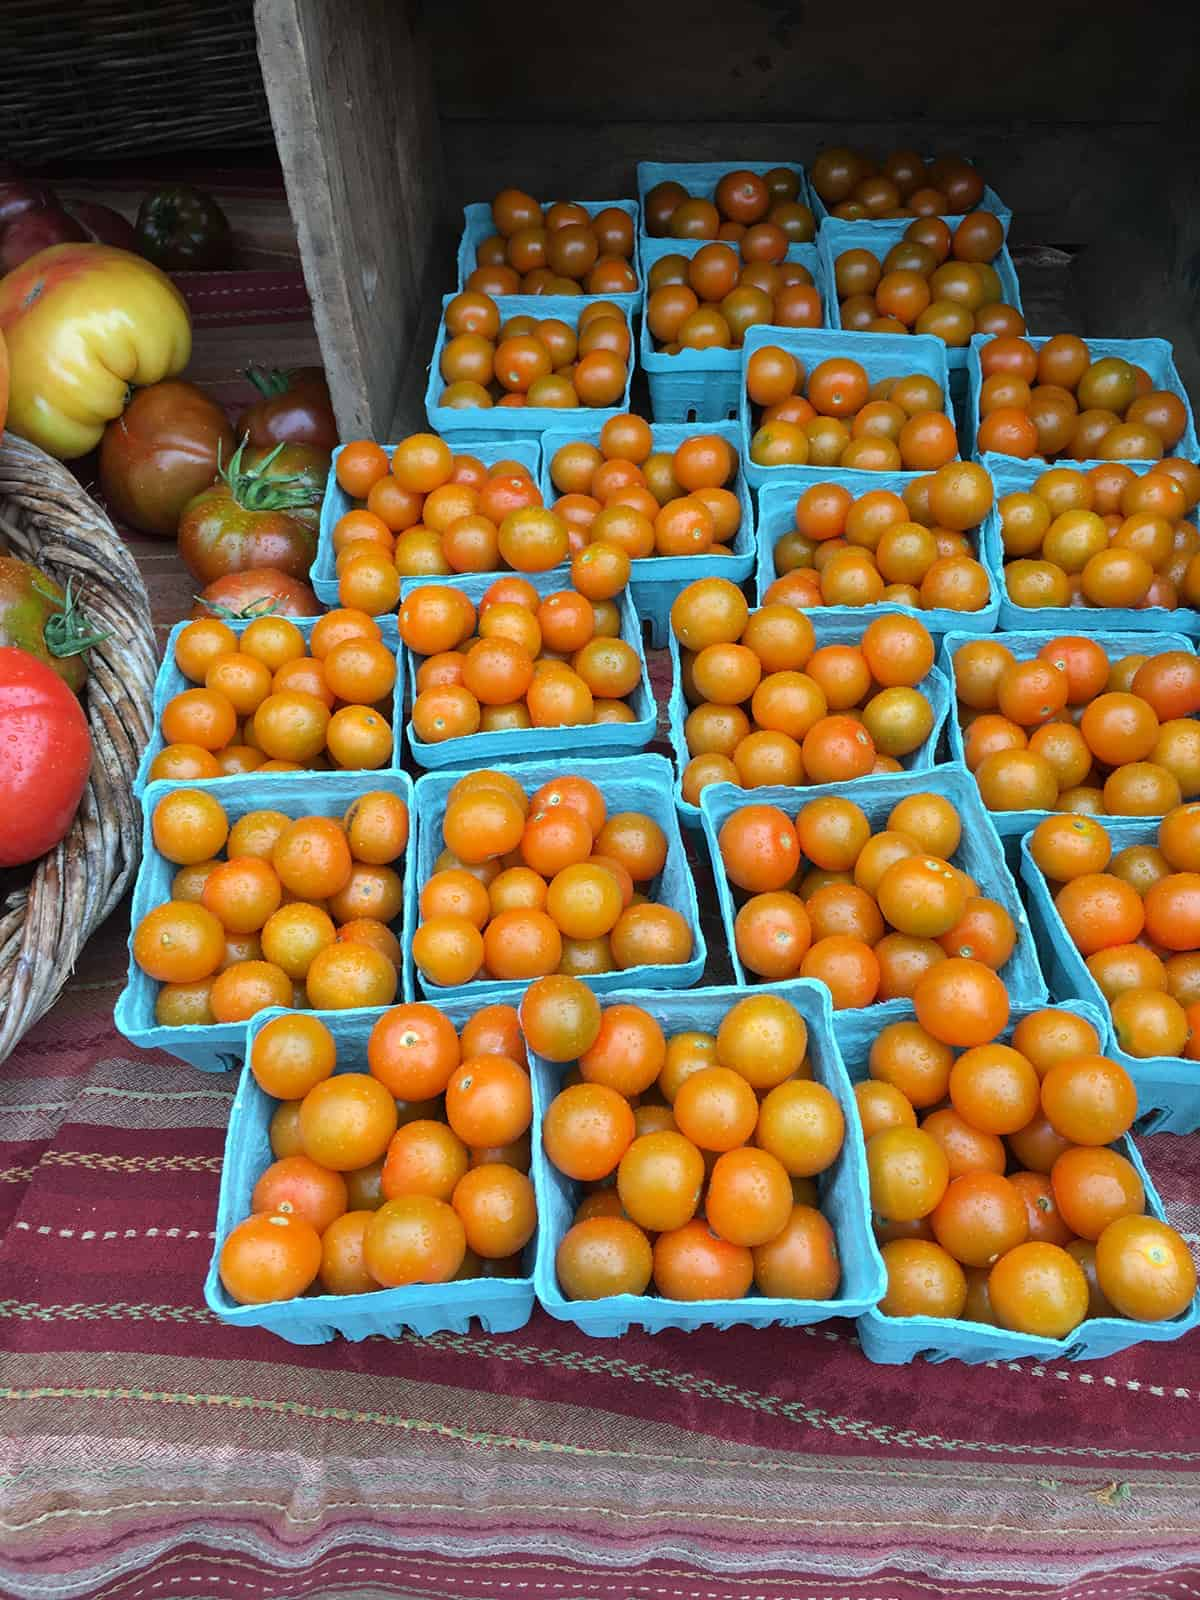 Orange cherry tomatoes on display at a farmers market